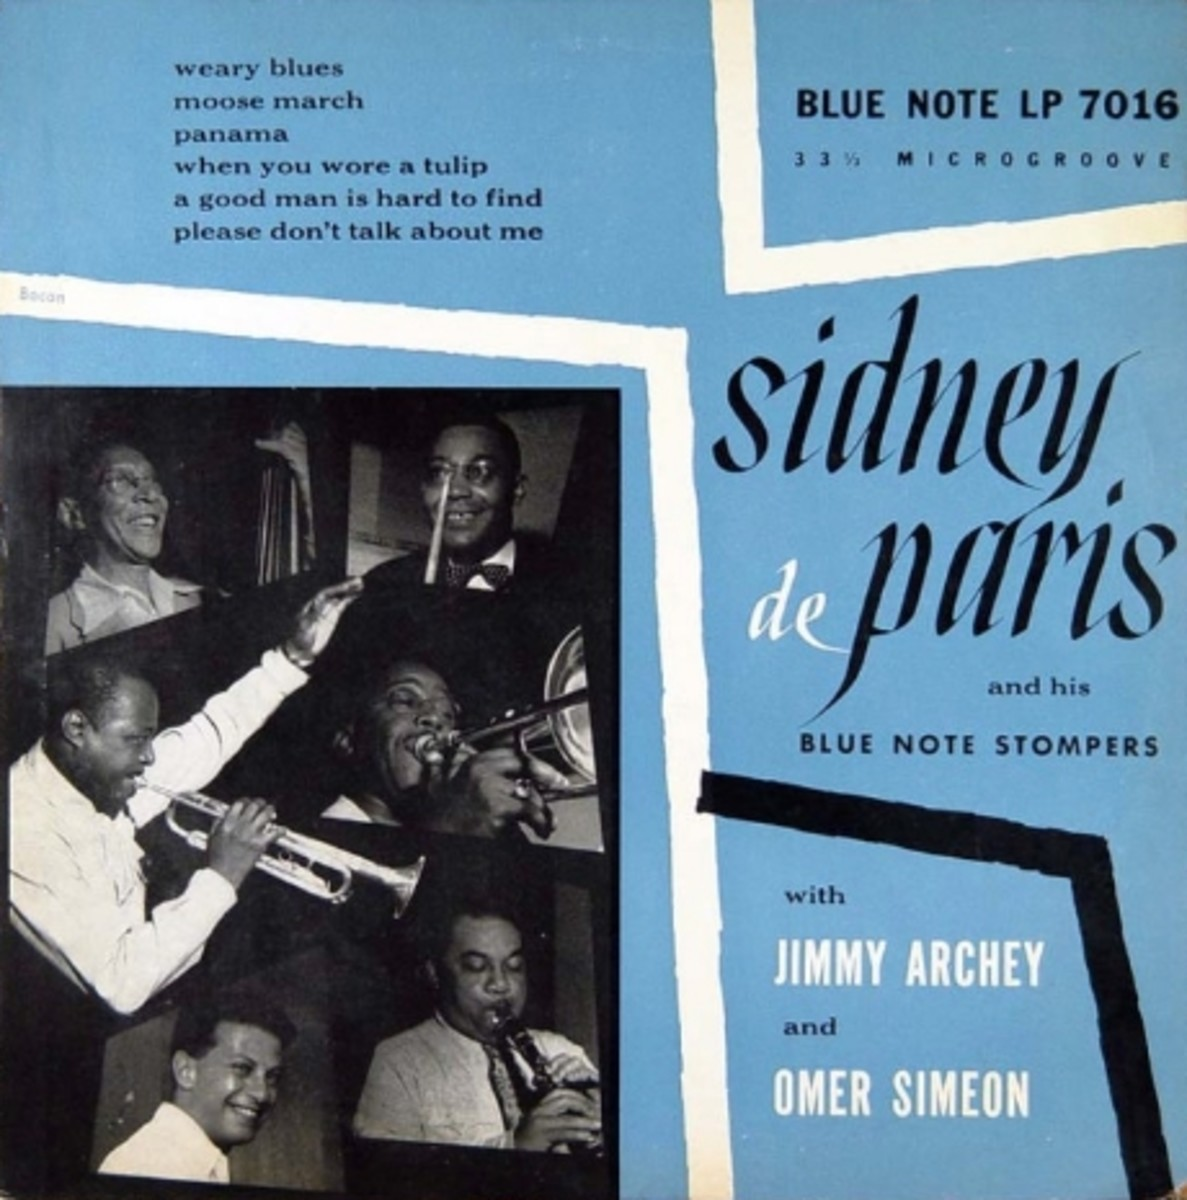 """Sidney de Paris & His Blue Note Stompers Blue Note Records BLP 7016 10"""" LP Vinyl Microgroove Record  (1951) Album Cover Design by Paul Bacon Photo by Francis Wolff (1951)"""